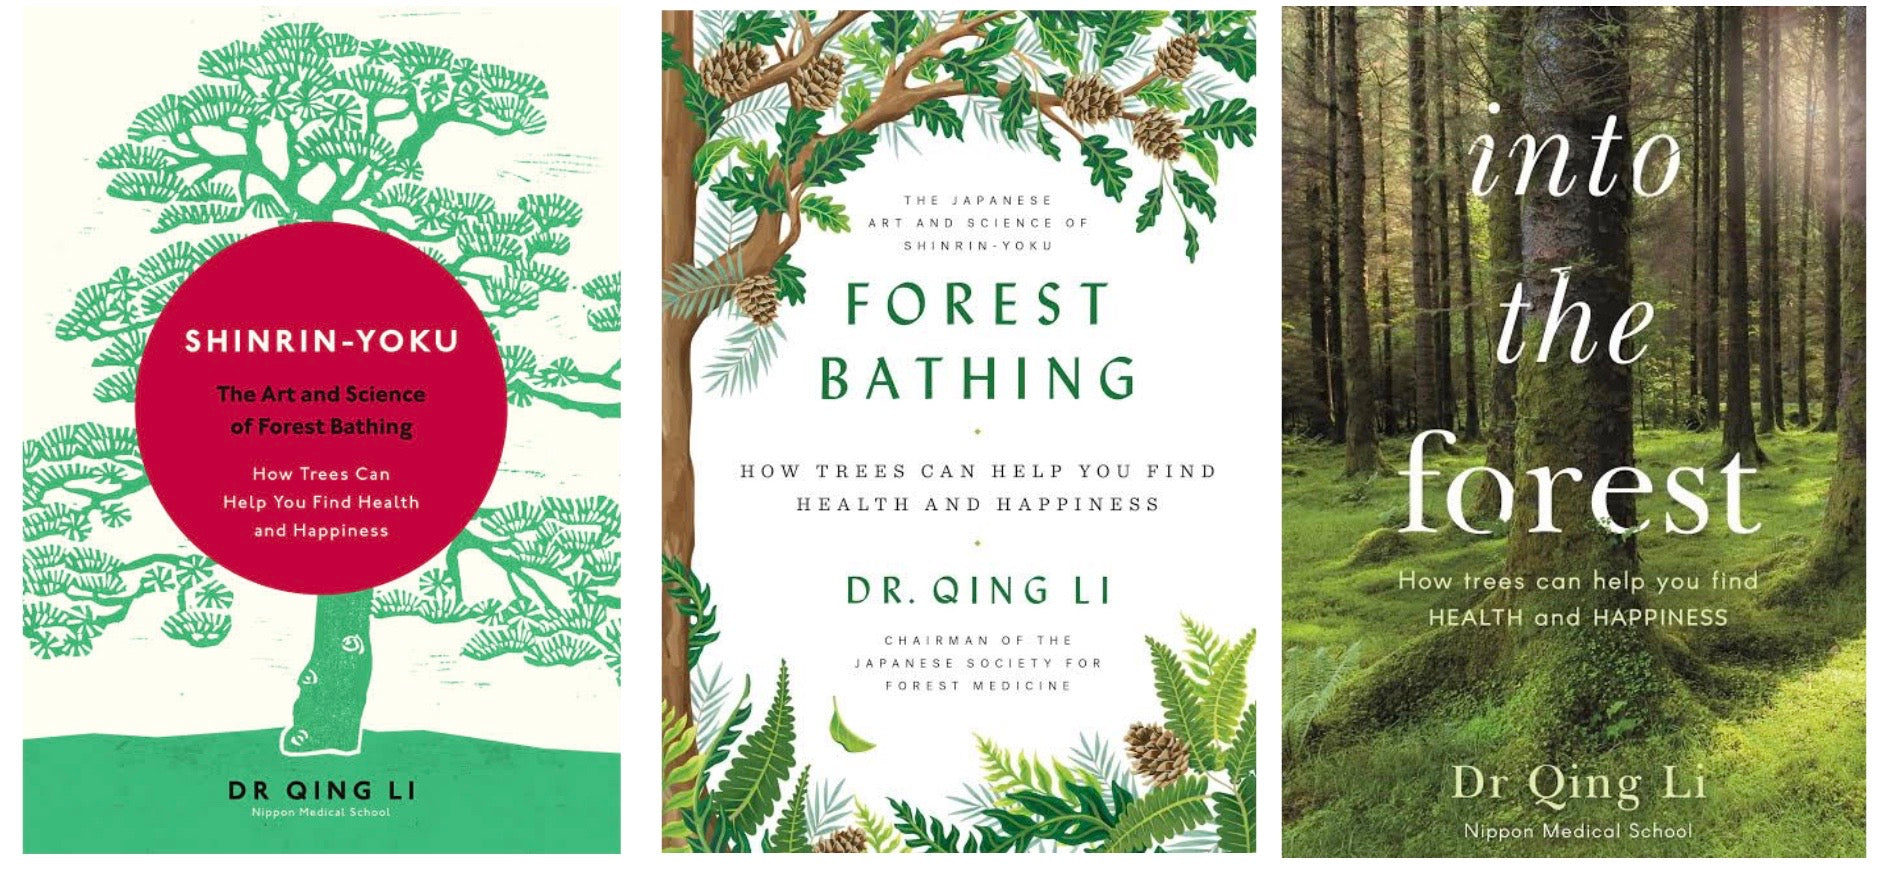 Forest Bathing book cover by Dr Quing Li